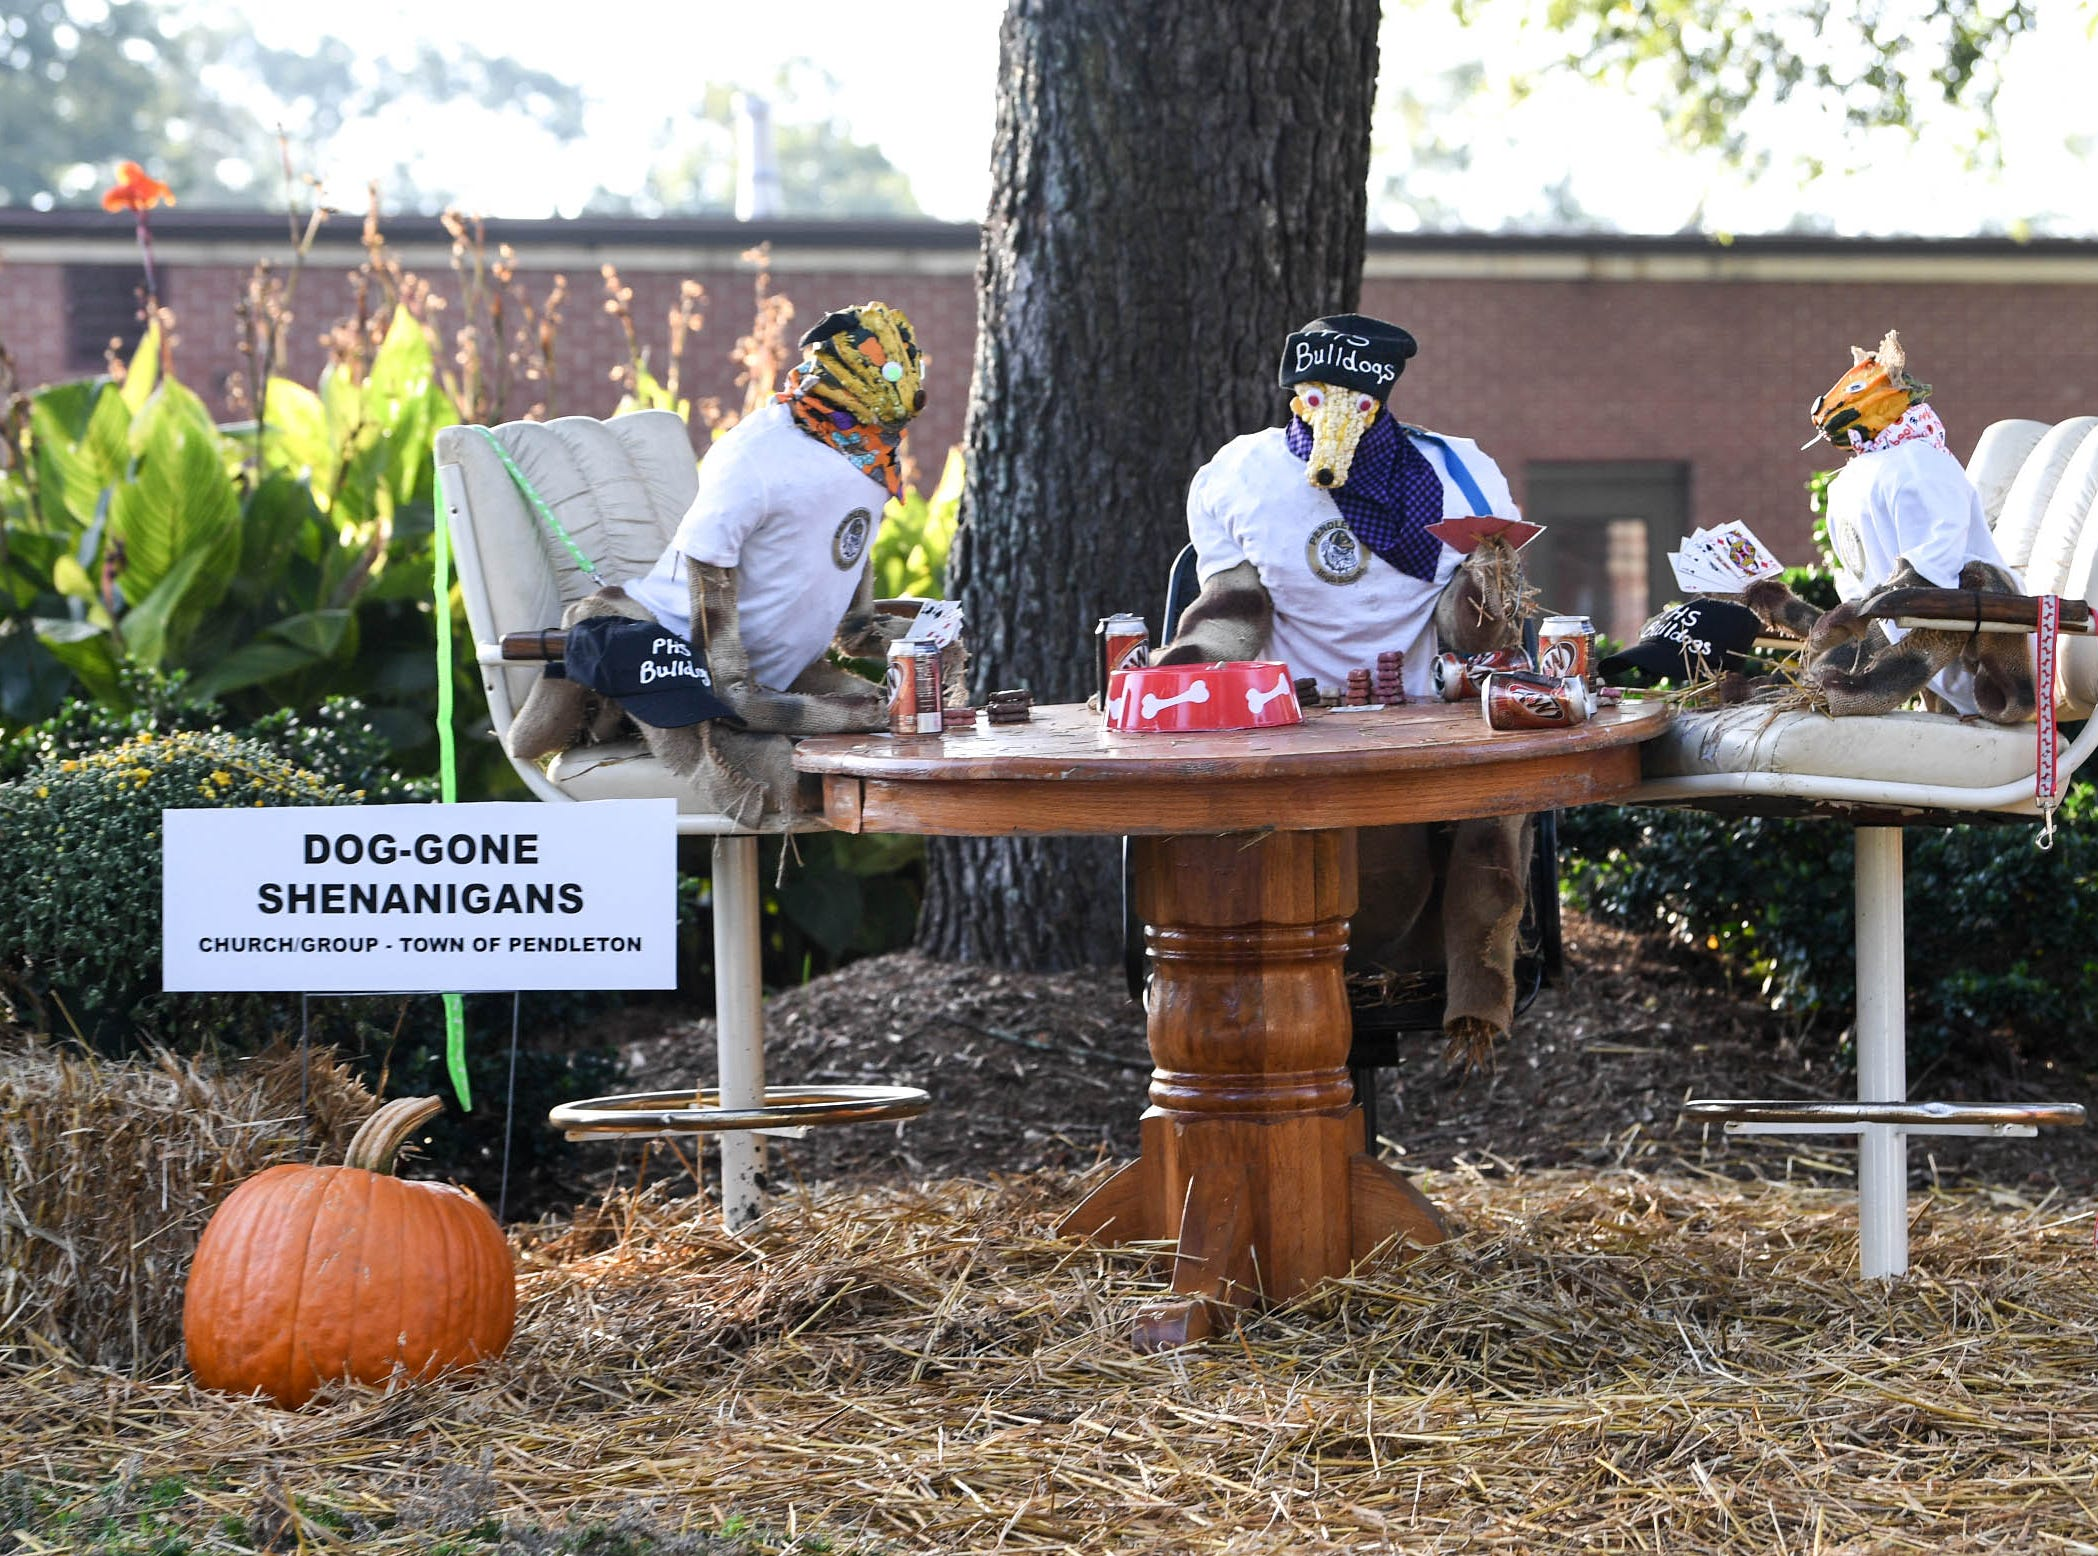 """""""Dog-Gone Shenanigans"""" by the Town of Pendleton is one of many displays in The Pendleton Scarecrow Contest leading up to the 20th Fall Harvest Festival in the village green Saturday, October 6 from 10 a.m. to 5 p.m. The annual contest in Pendleton for businesses, individuals, groups, organizations and churches who create fun not scary Scarecrows. People driving around the downtown square can see different theme scarecrows."""